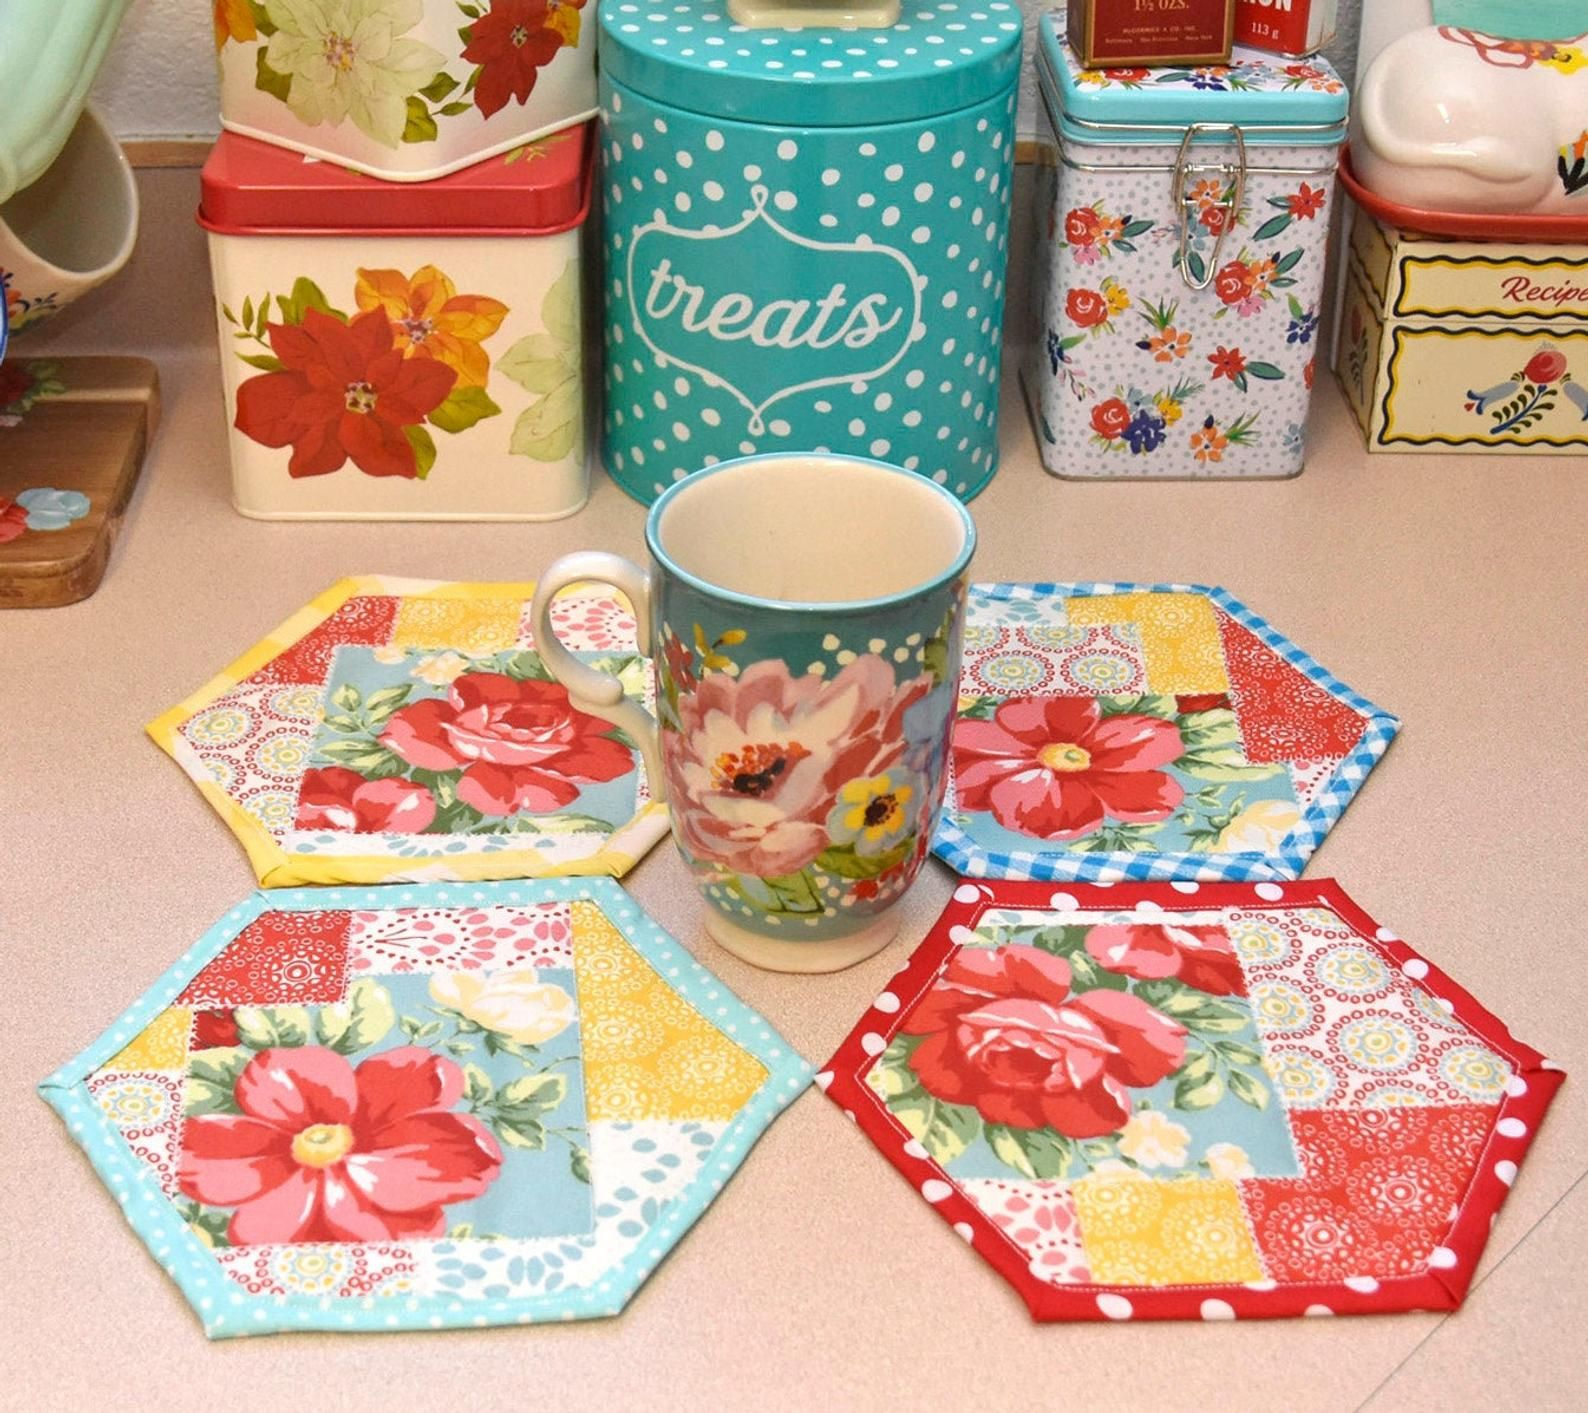 Pioneer Woman Vintage Floral Kitchen Decor Quilted Mug Rugs Farmhouse Decor Country Decor Vintage Kitchen Country Kitchen Farmhouse Kitchen In 2020 Pioneer Woman Kitchen Decor Pioneer Woman Kitchen Mug Rug